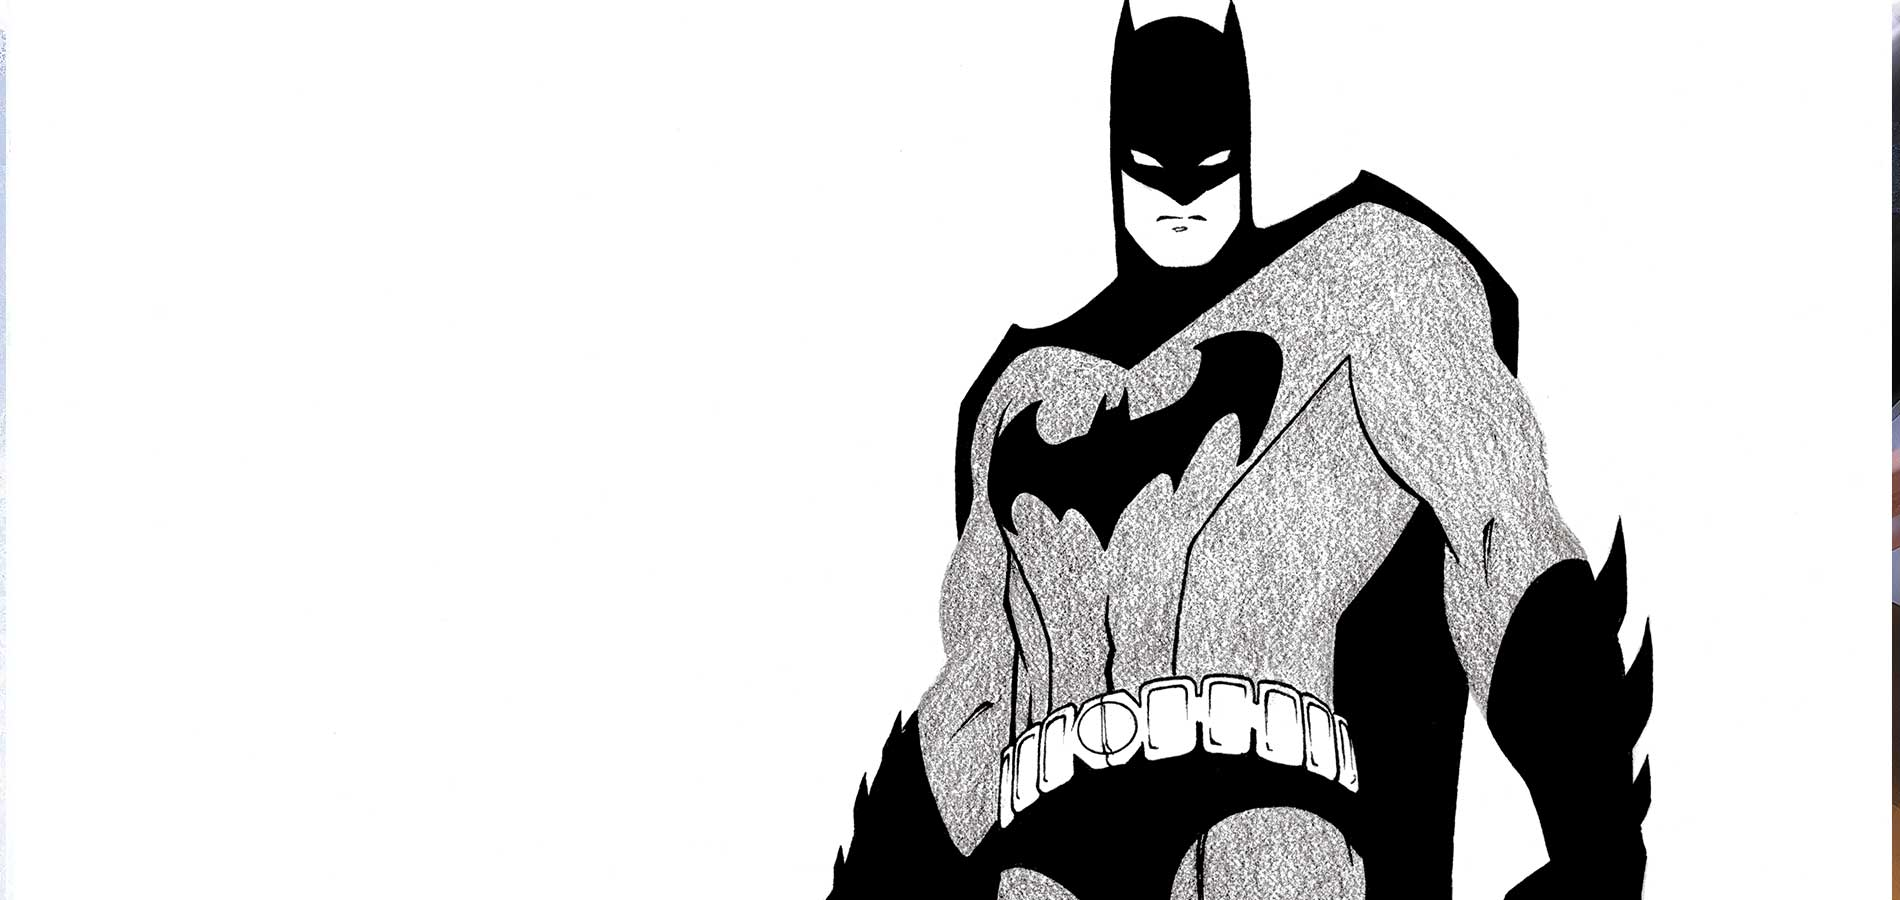 Batman Black And White Backgrounds, Compatible - PC, Mobile, Gadgets| 1900x900 px